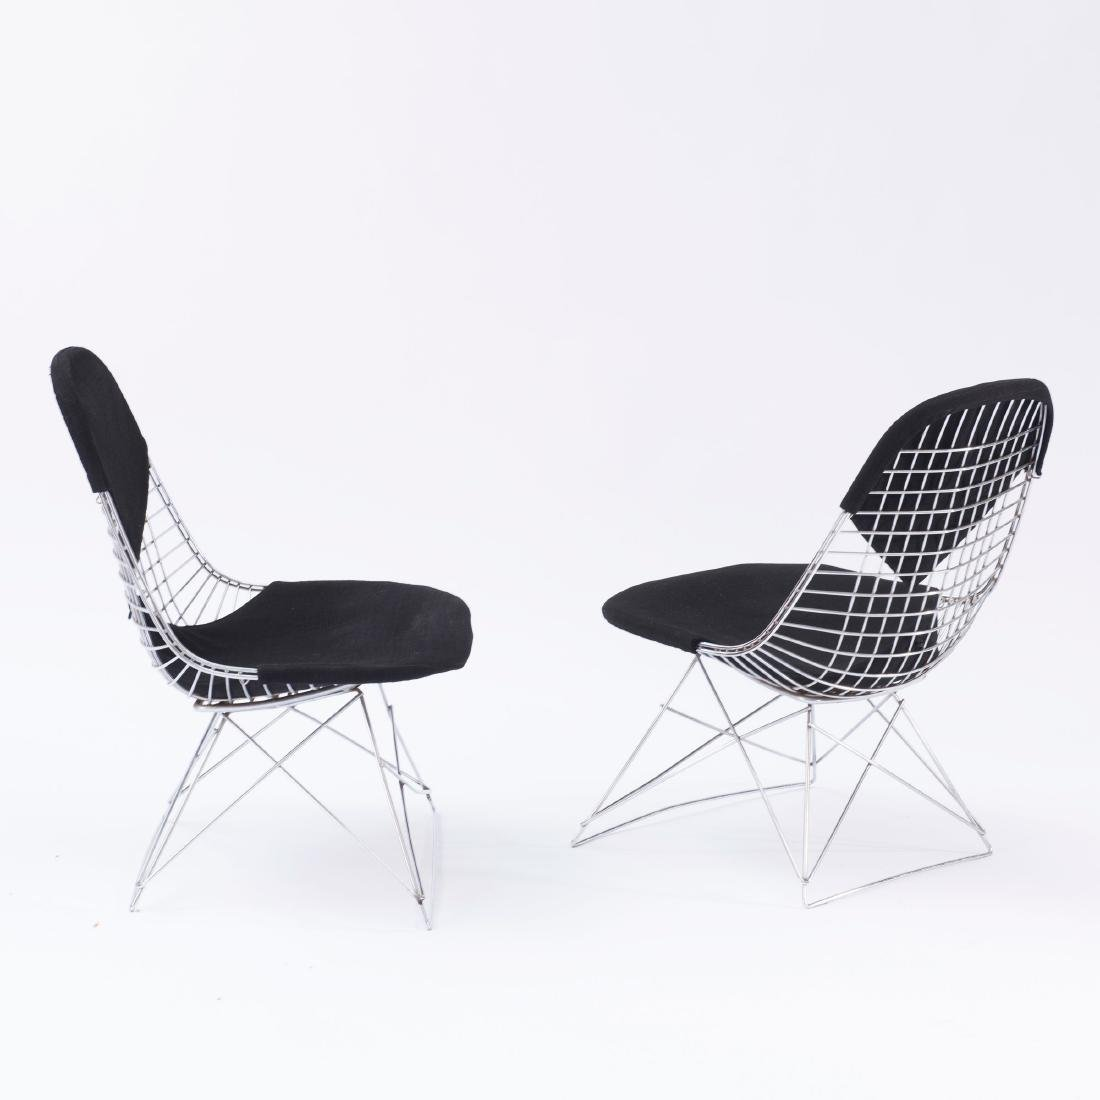 Two 'Wire mesh' chairs on 'LKR base', 1951 - 2